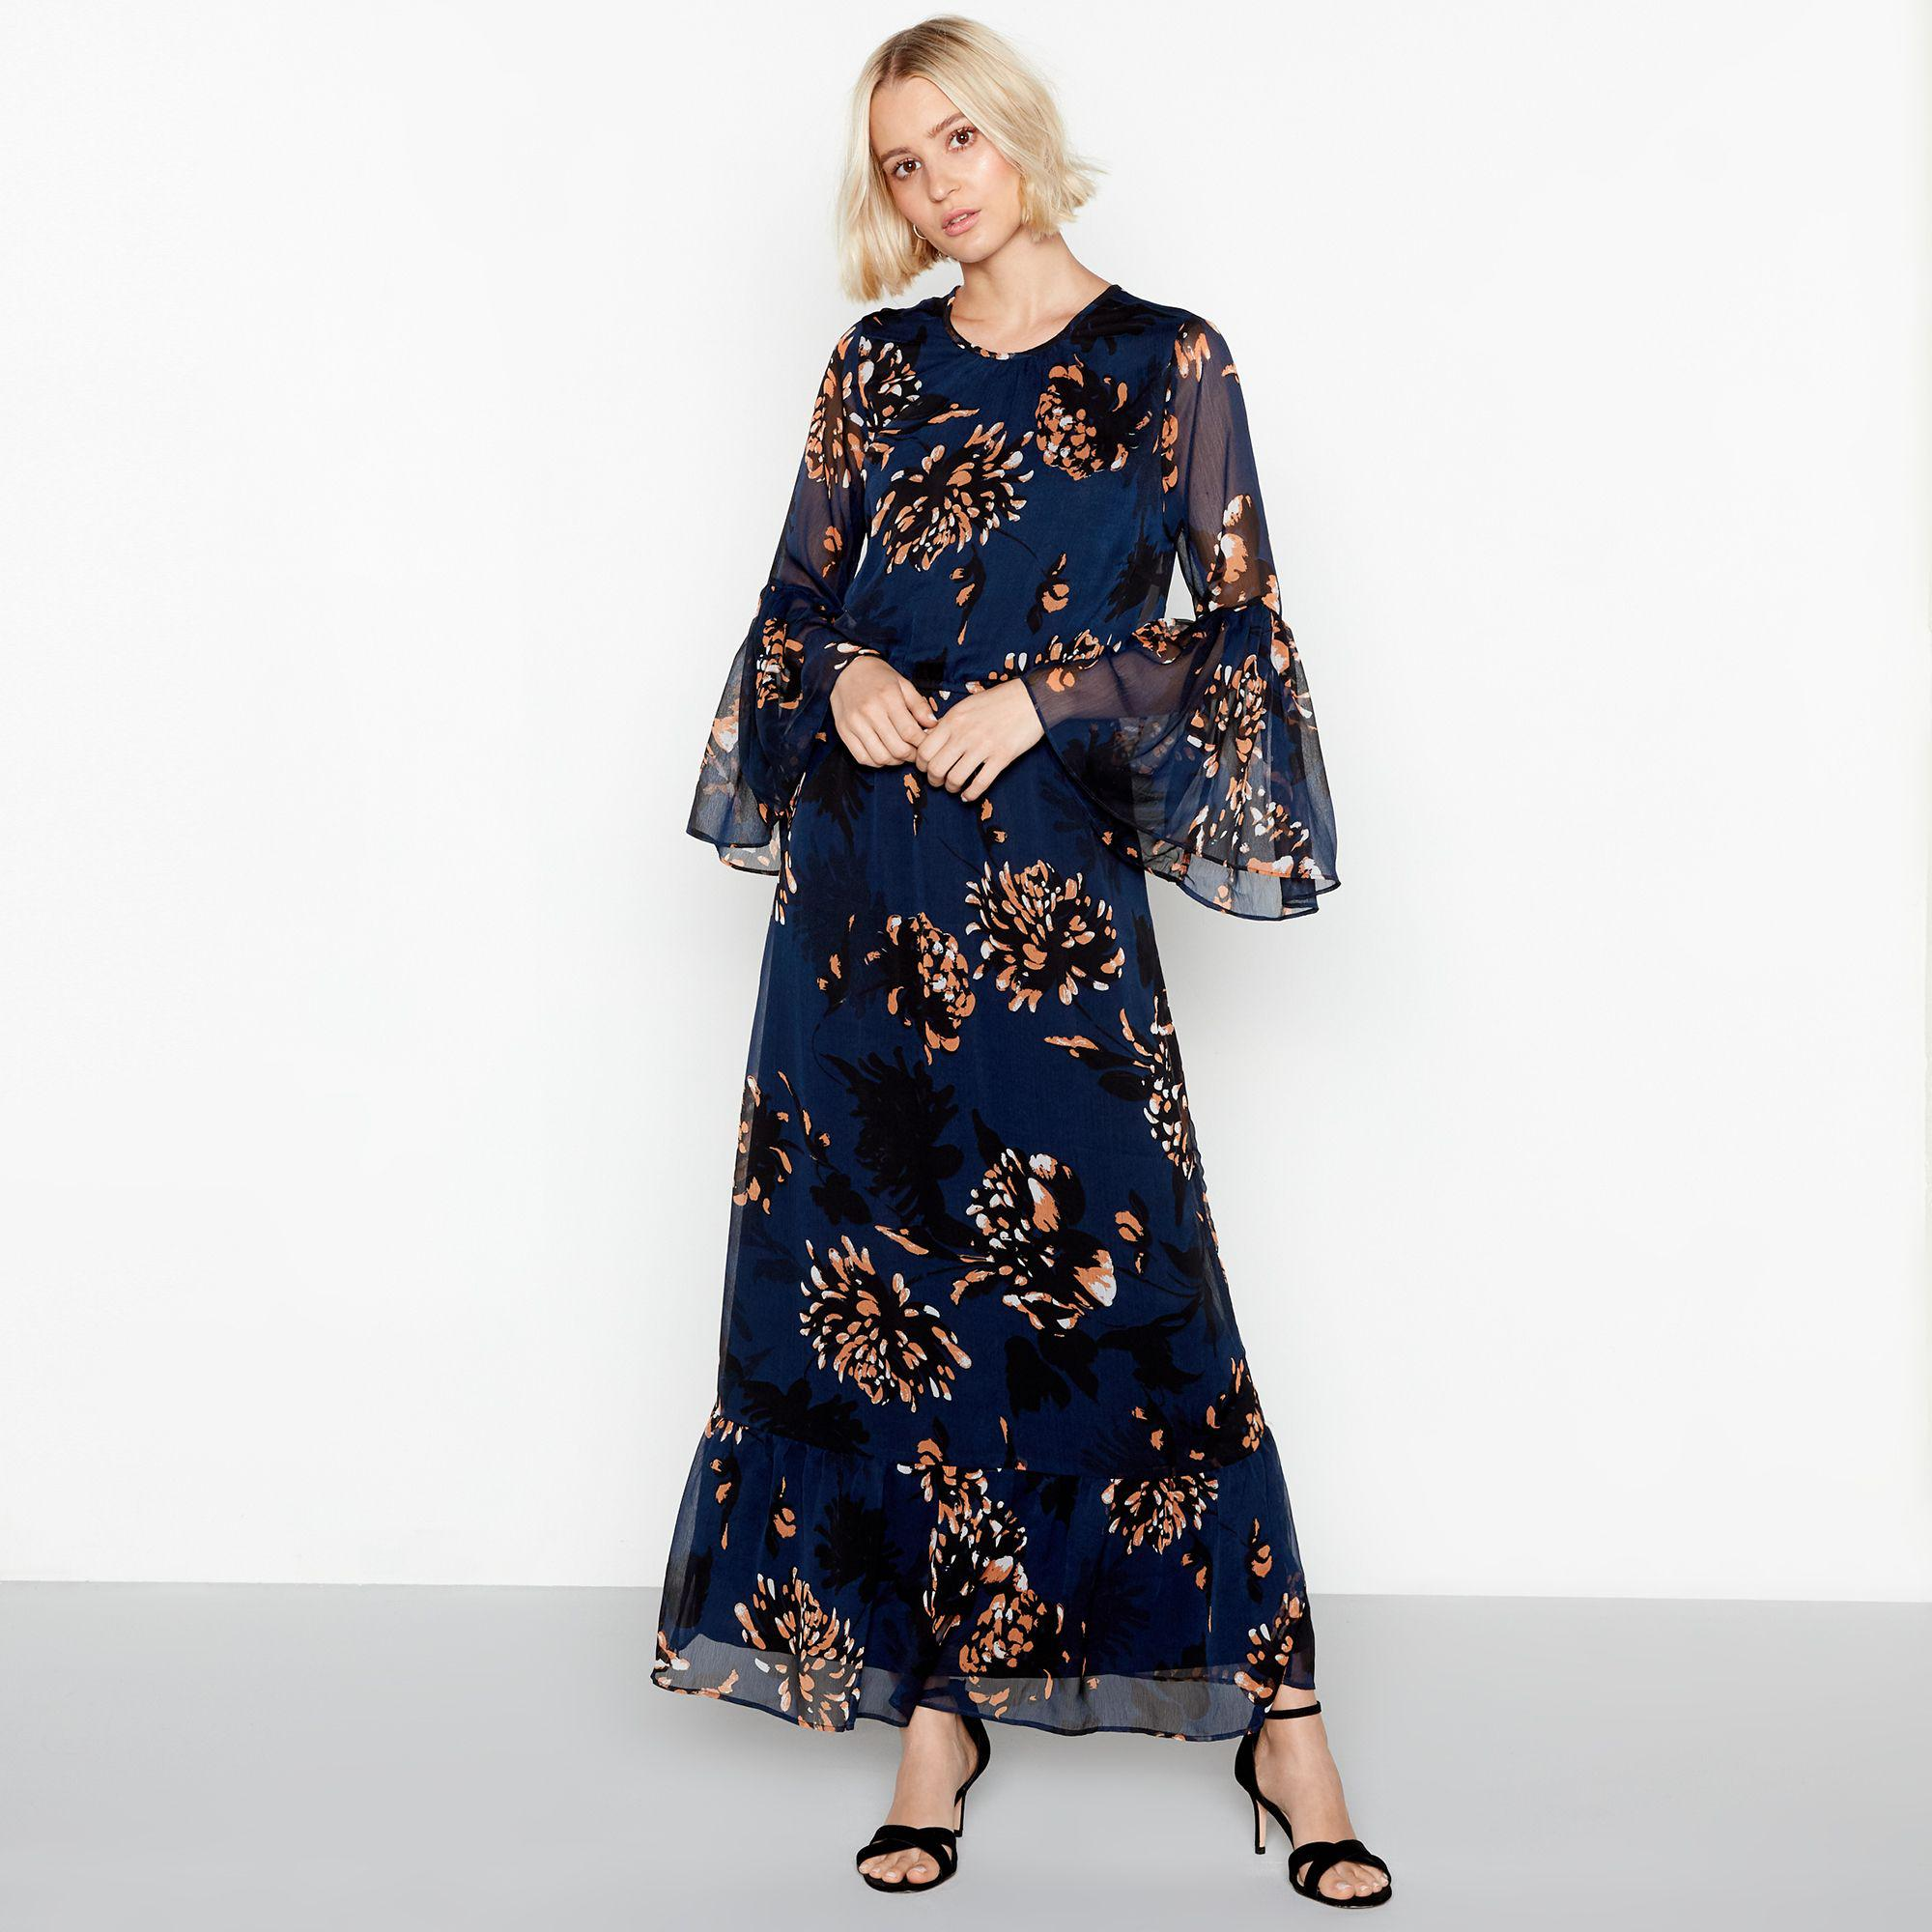 b4fadf1c8952 Y.A.S. Women s Dark Blue Floral Print Chiffon Round Neck Long Sleeves Maxi  Dress